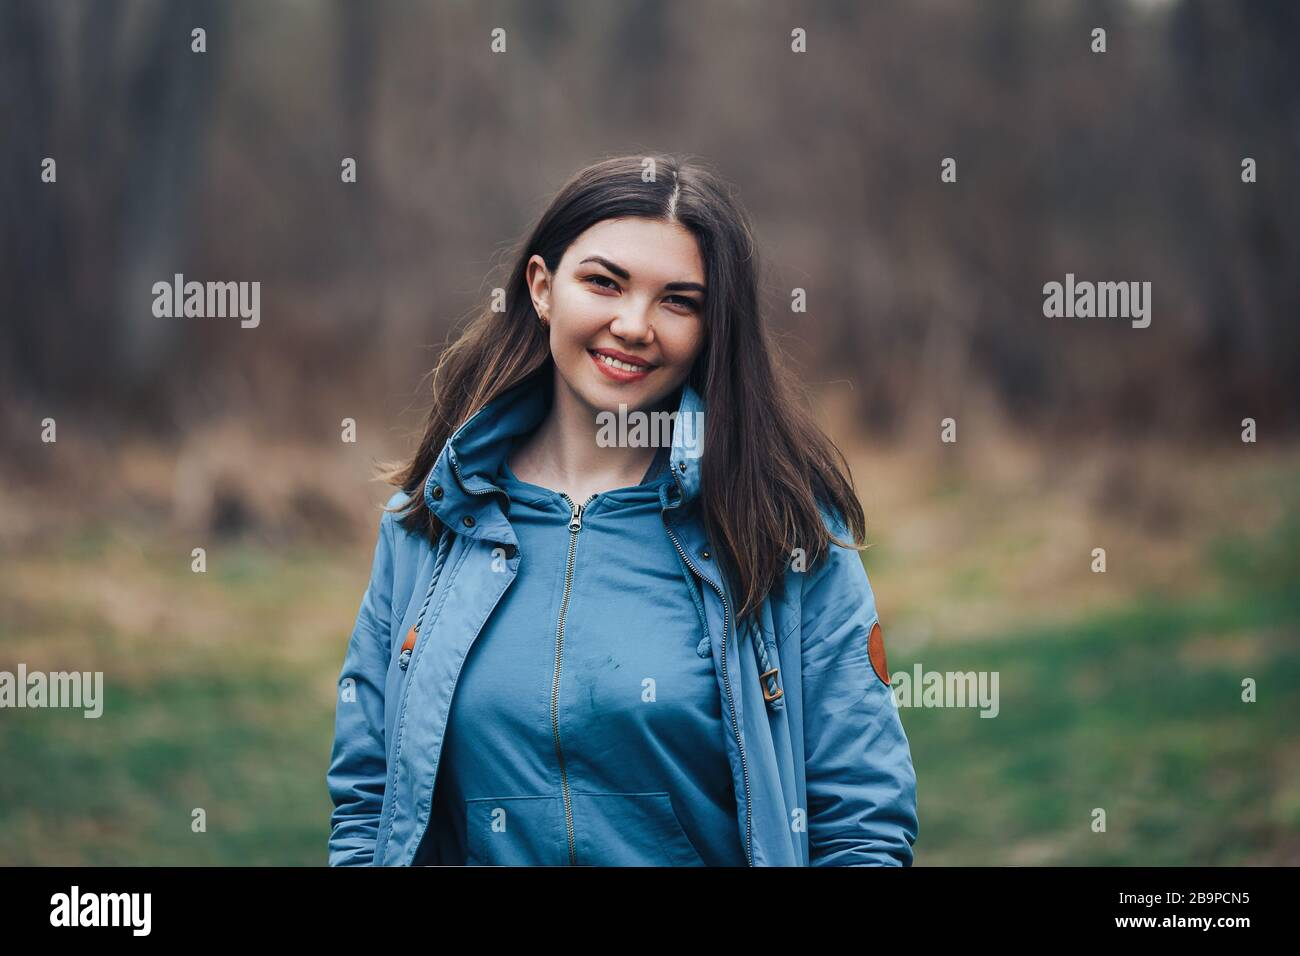 beautiful young smiling dark-haired woman in green jacket outdoor in forest Stock Photo